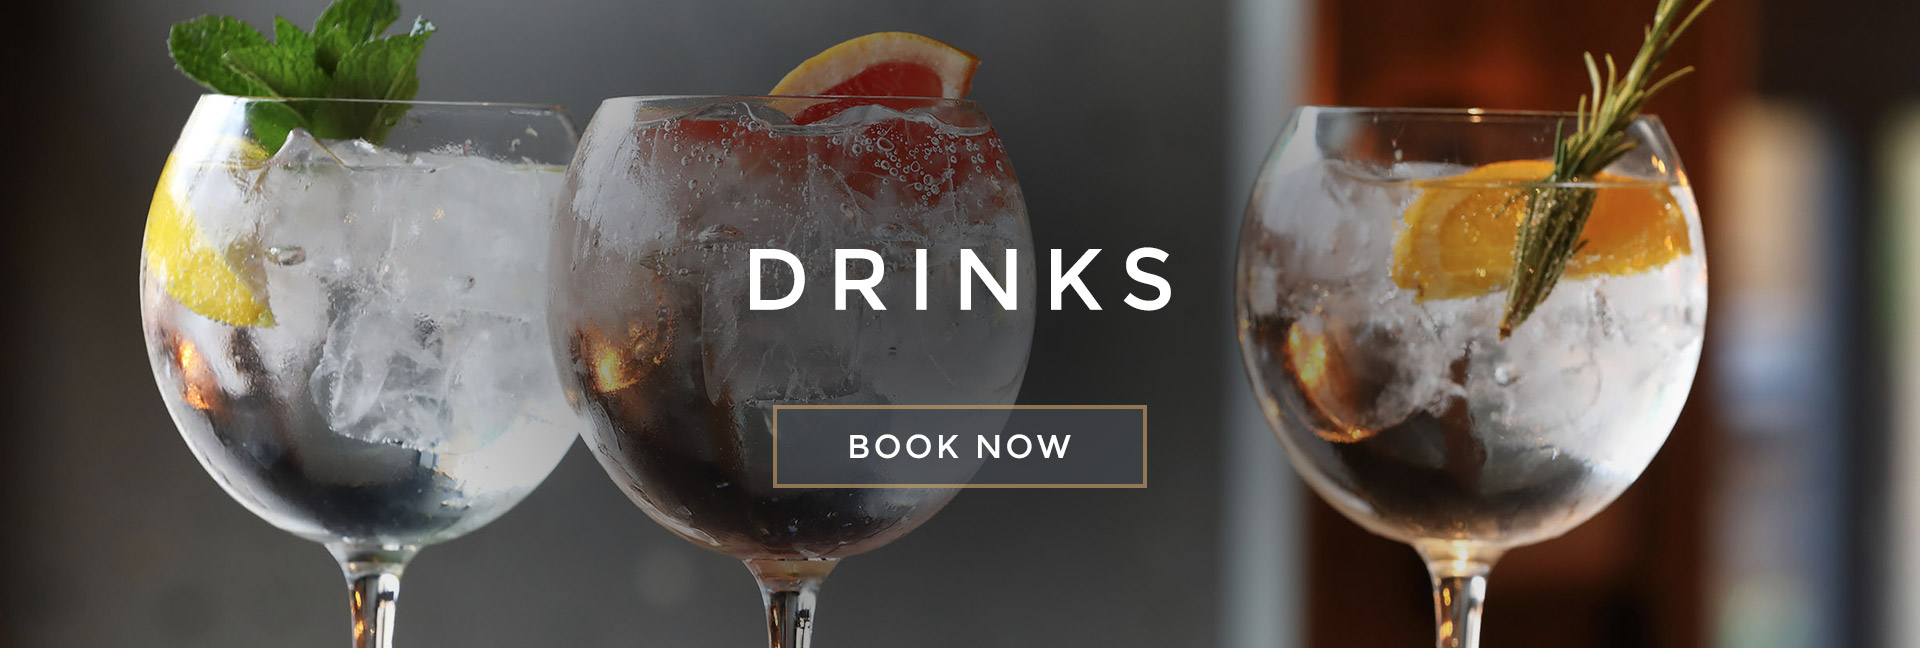 Drinks at All Bar One York - Book your table